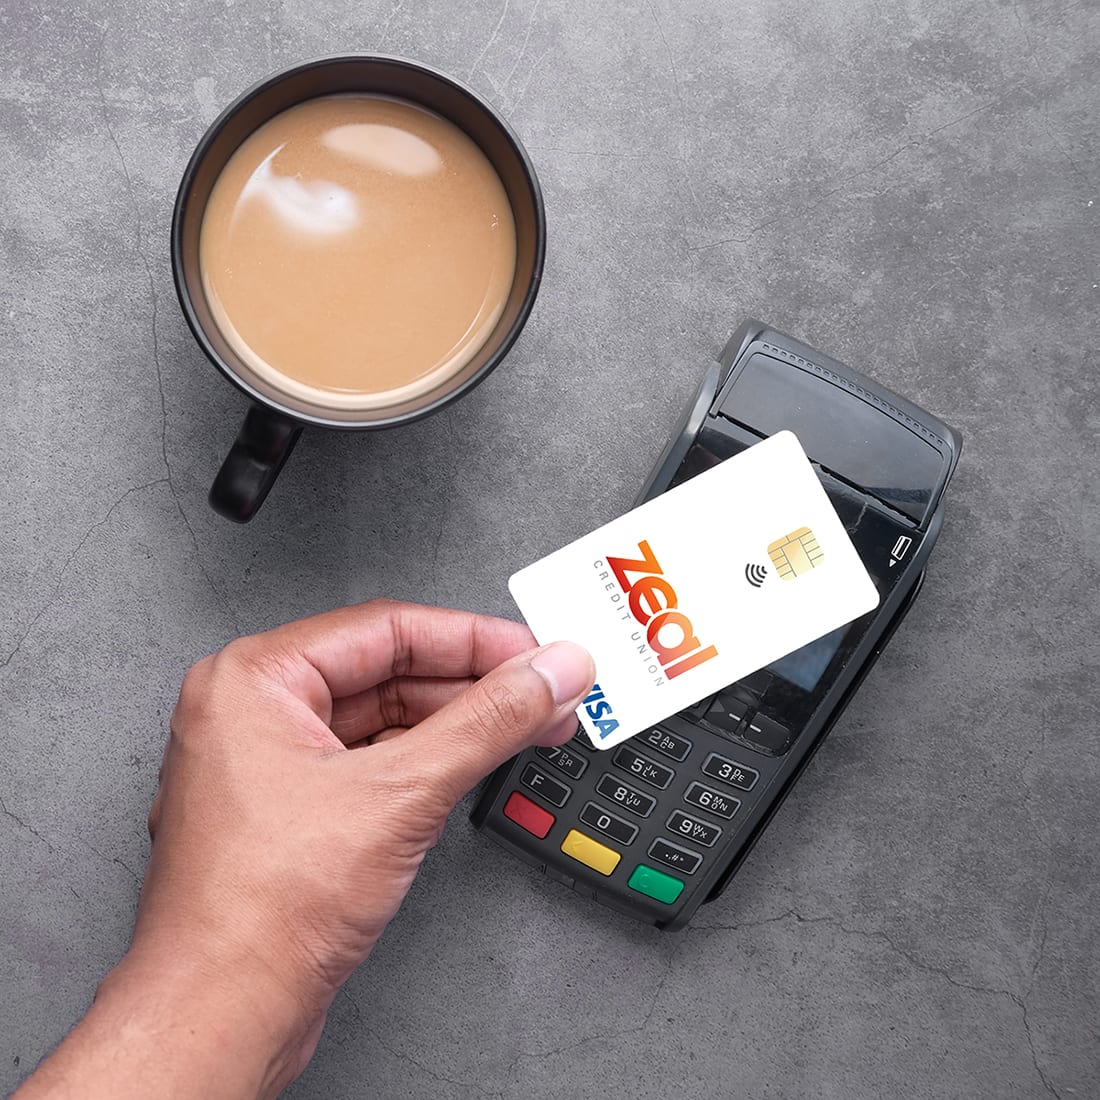 Zeal Tap to Pay. Hand holding Zeal credit card over wireless payment system.